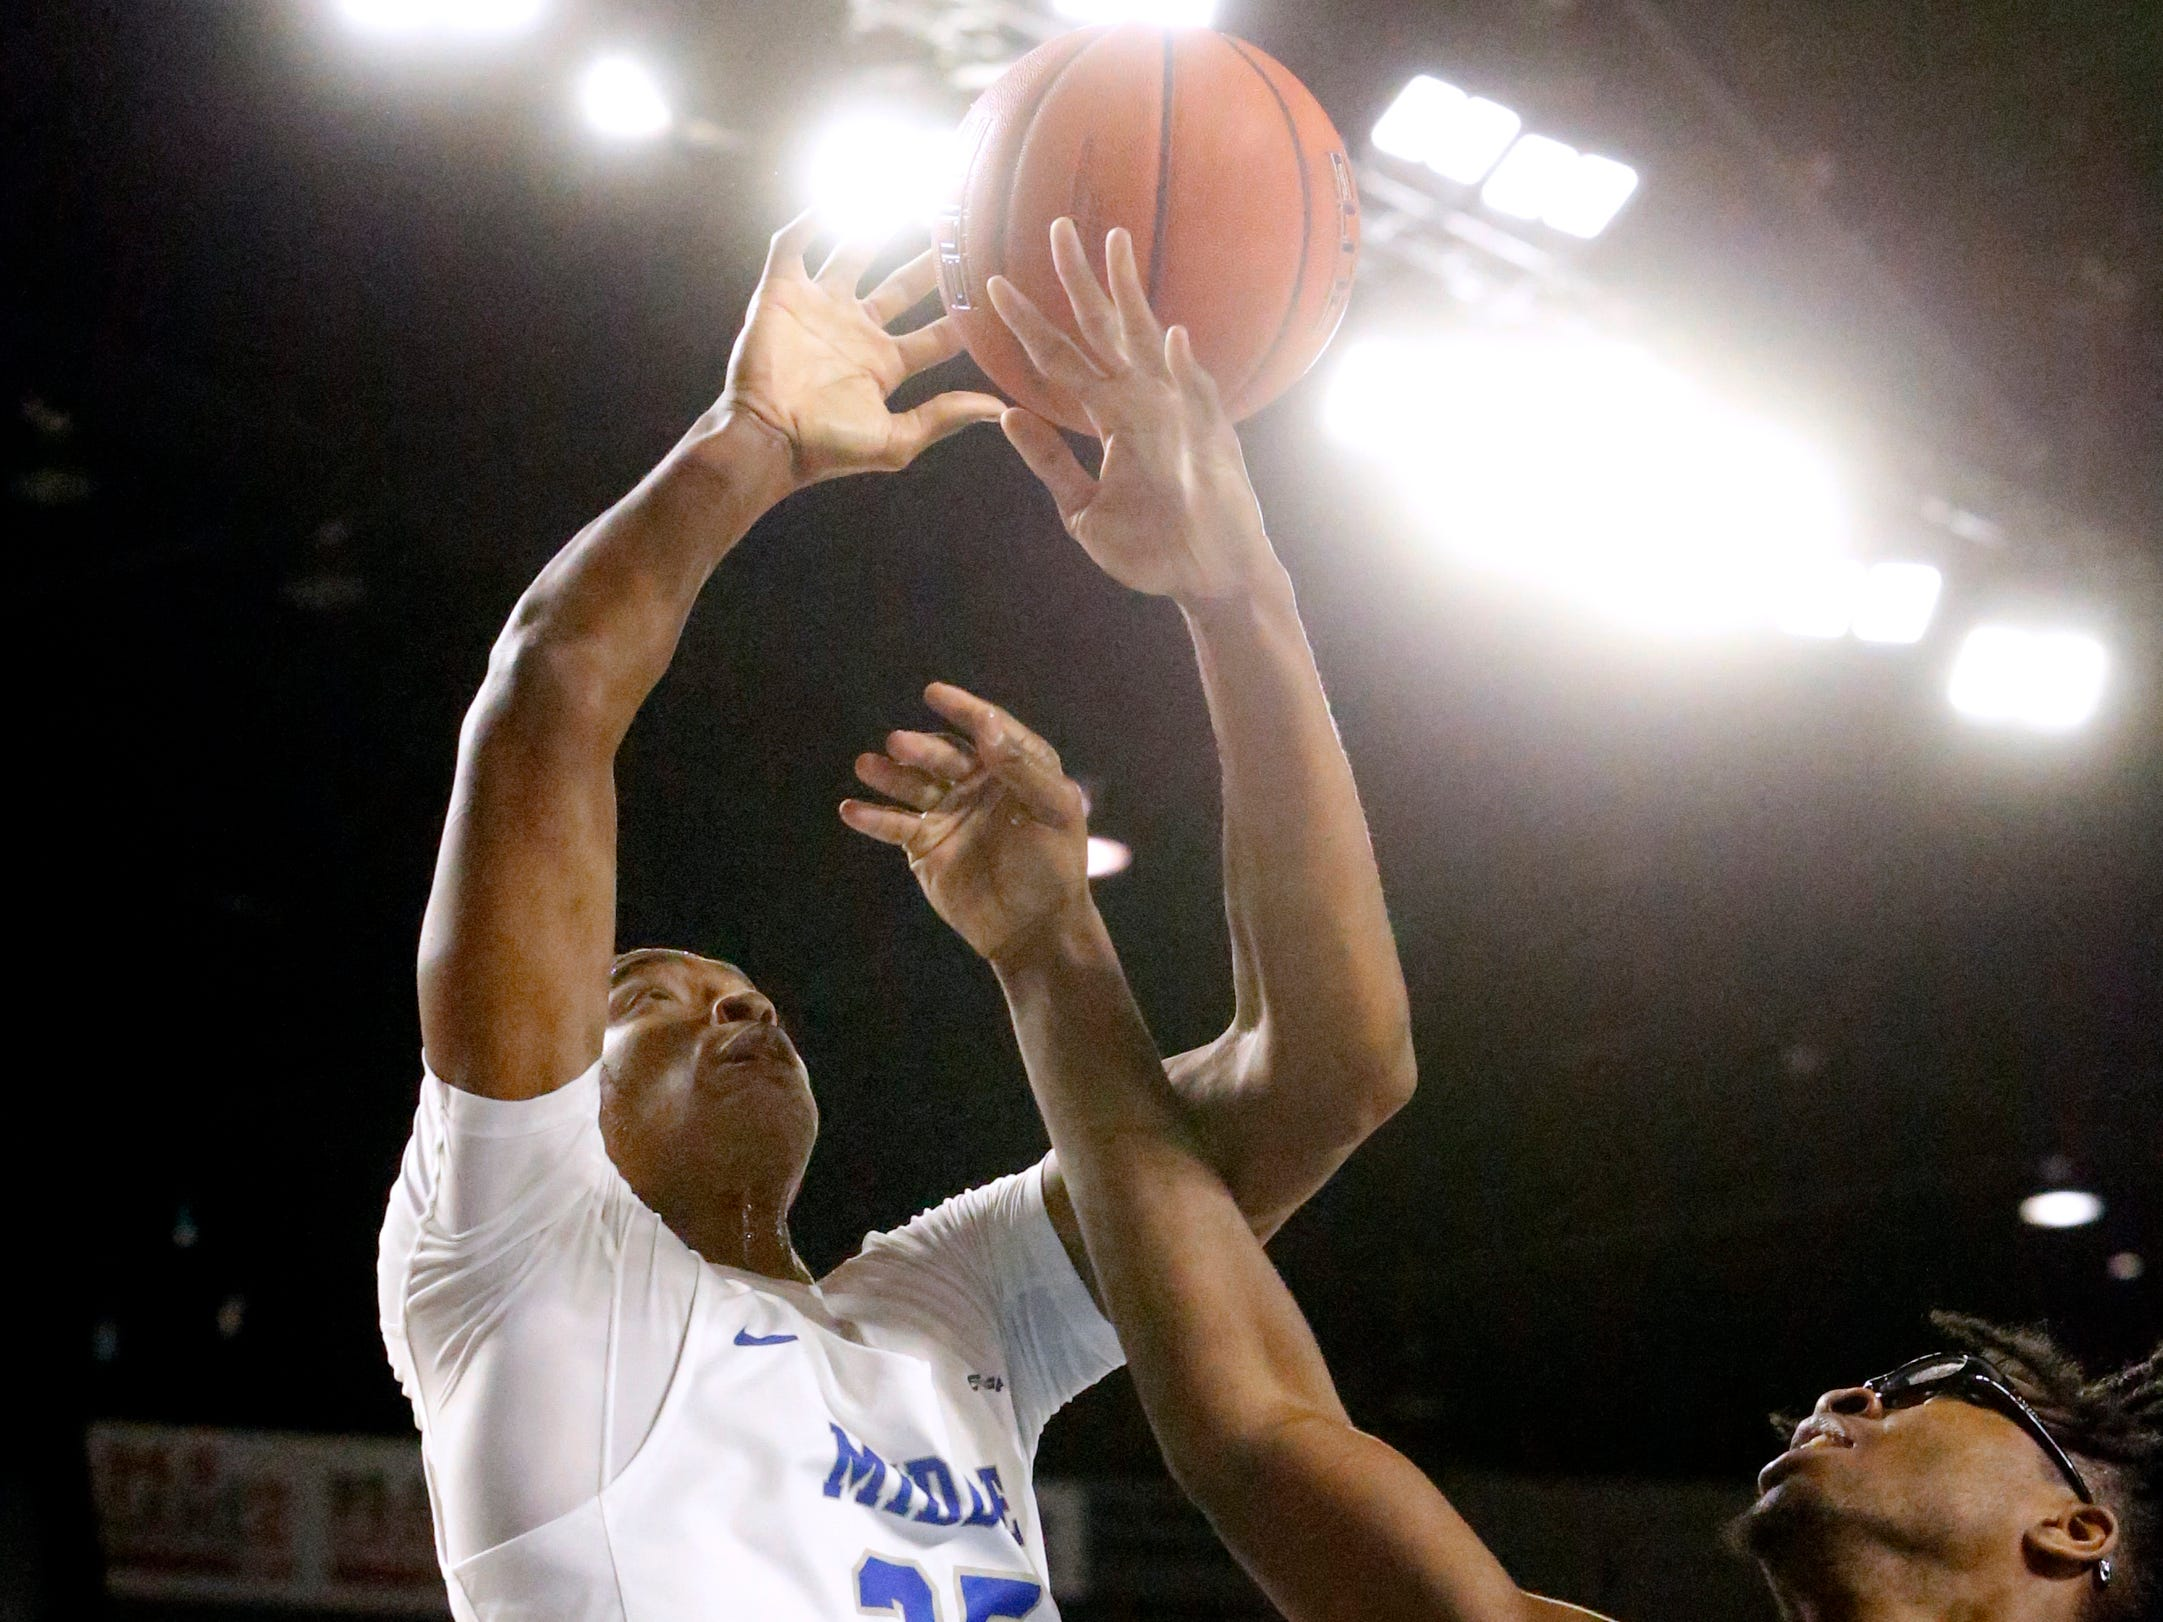 MTSU forward Karl Gamble (25) goes after a rebound with UAB's forward Tamell Pearson (11) on Wednesday Jan. 30, 2019.